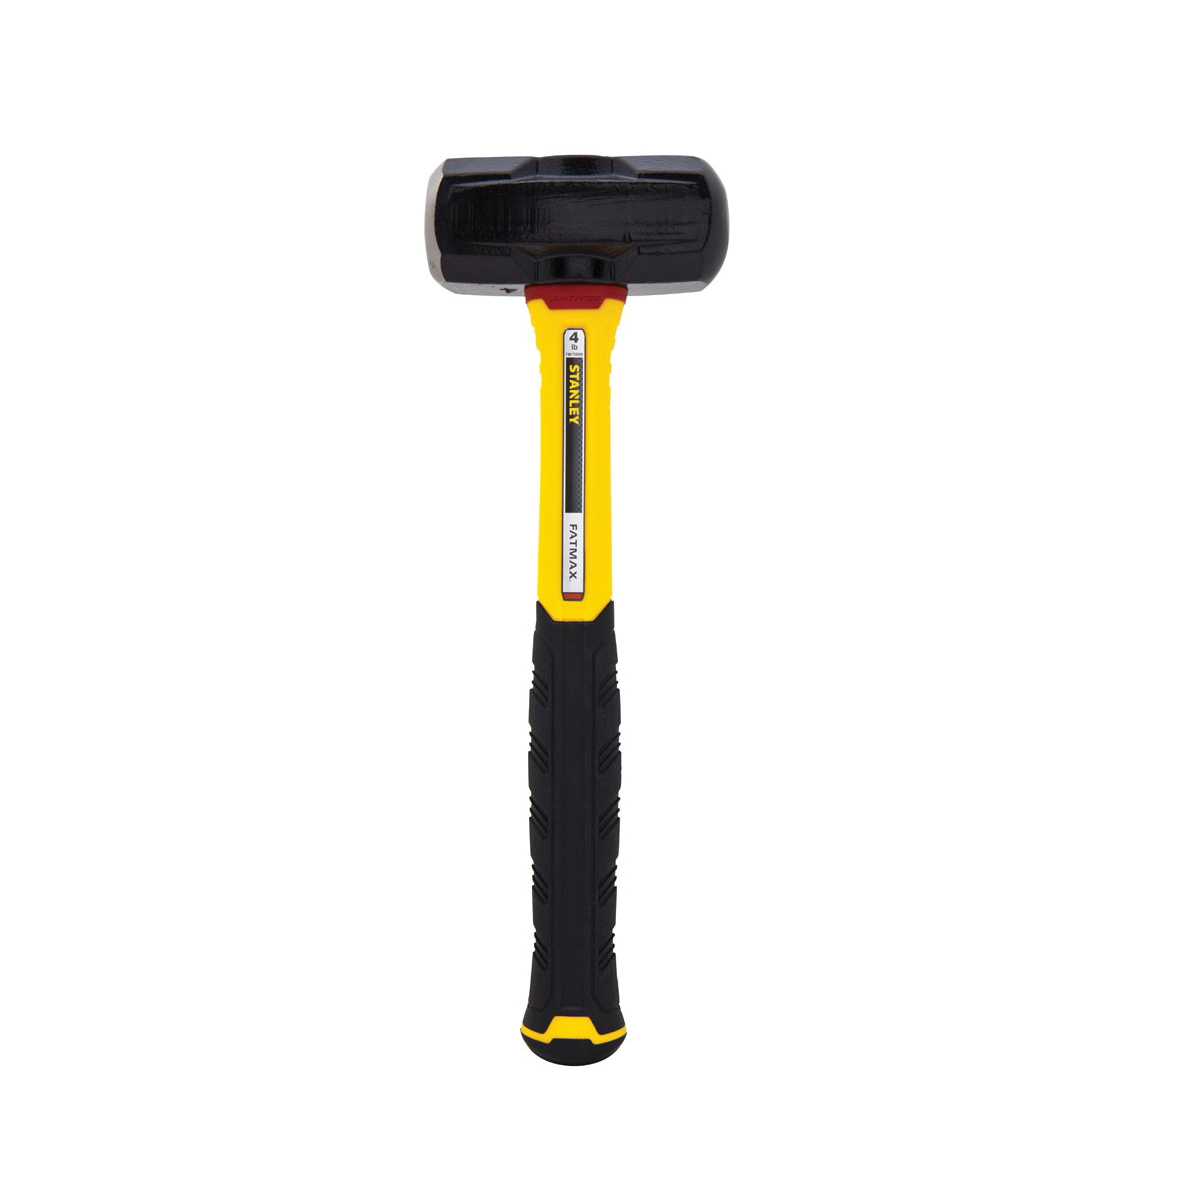 Stanley® FatMax® FMHT56009 Engineer Sledge Hammer, 14-1/2 in OAL, 4 lb Steel Head, Fiberglass Handle